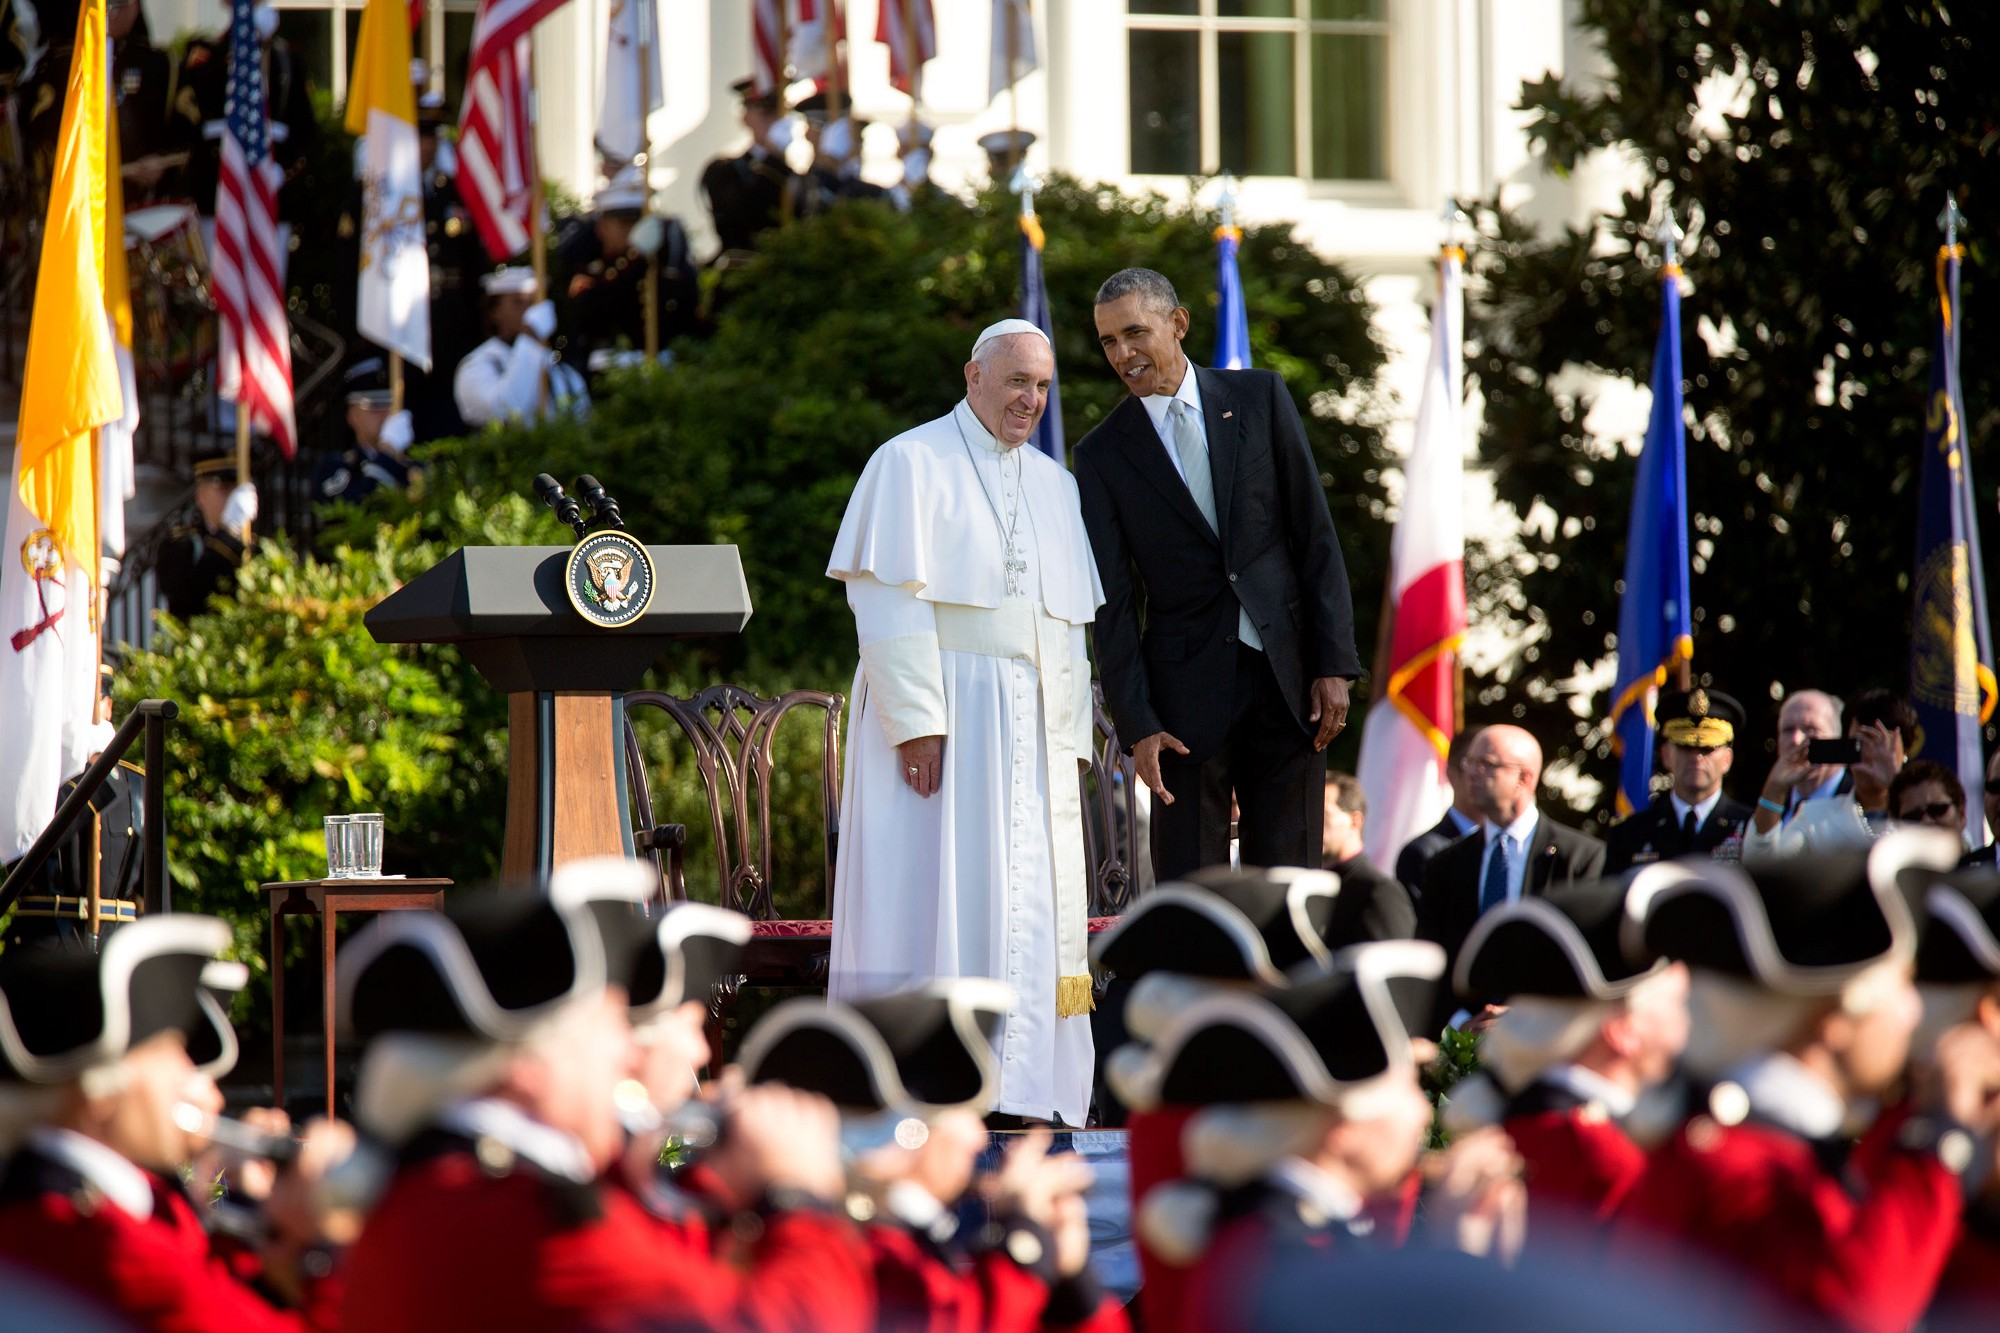 President Obama talks to Pope Francis as the Army Fife and Drum Corps march. (Official White House Photo by Lawrence Jackson)